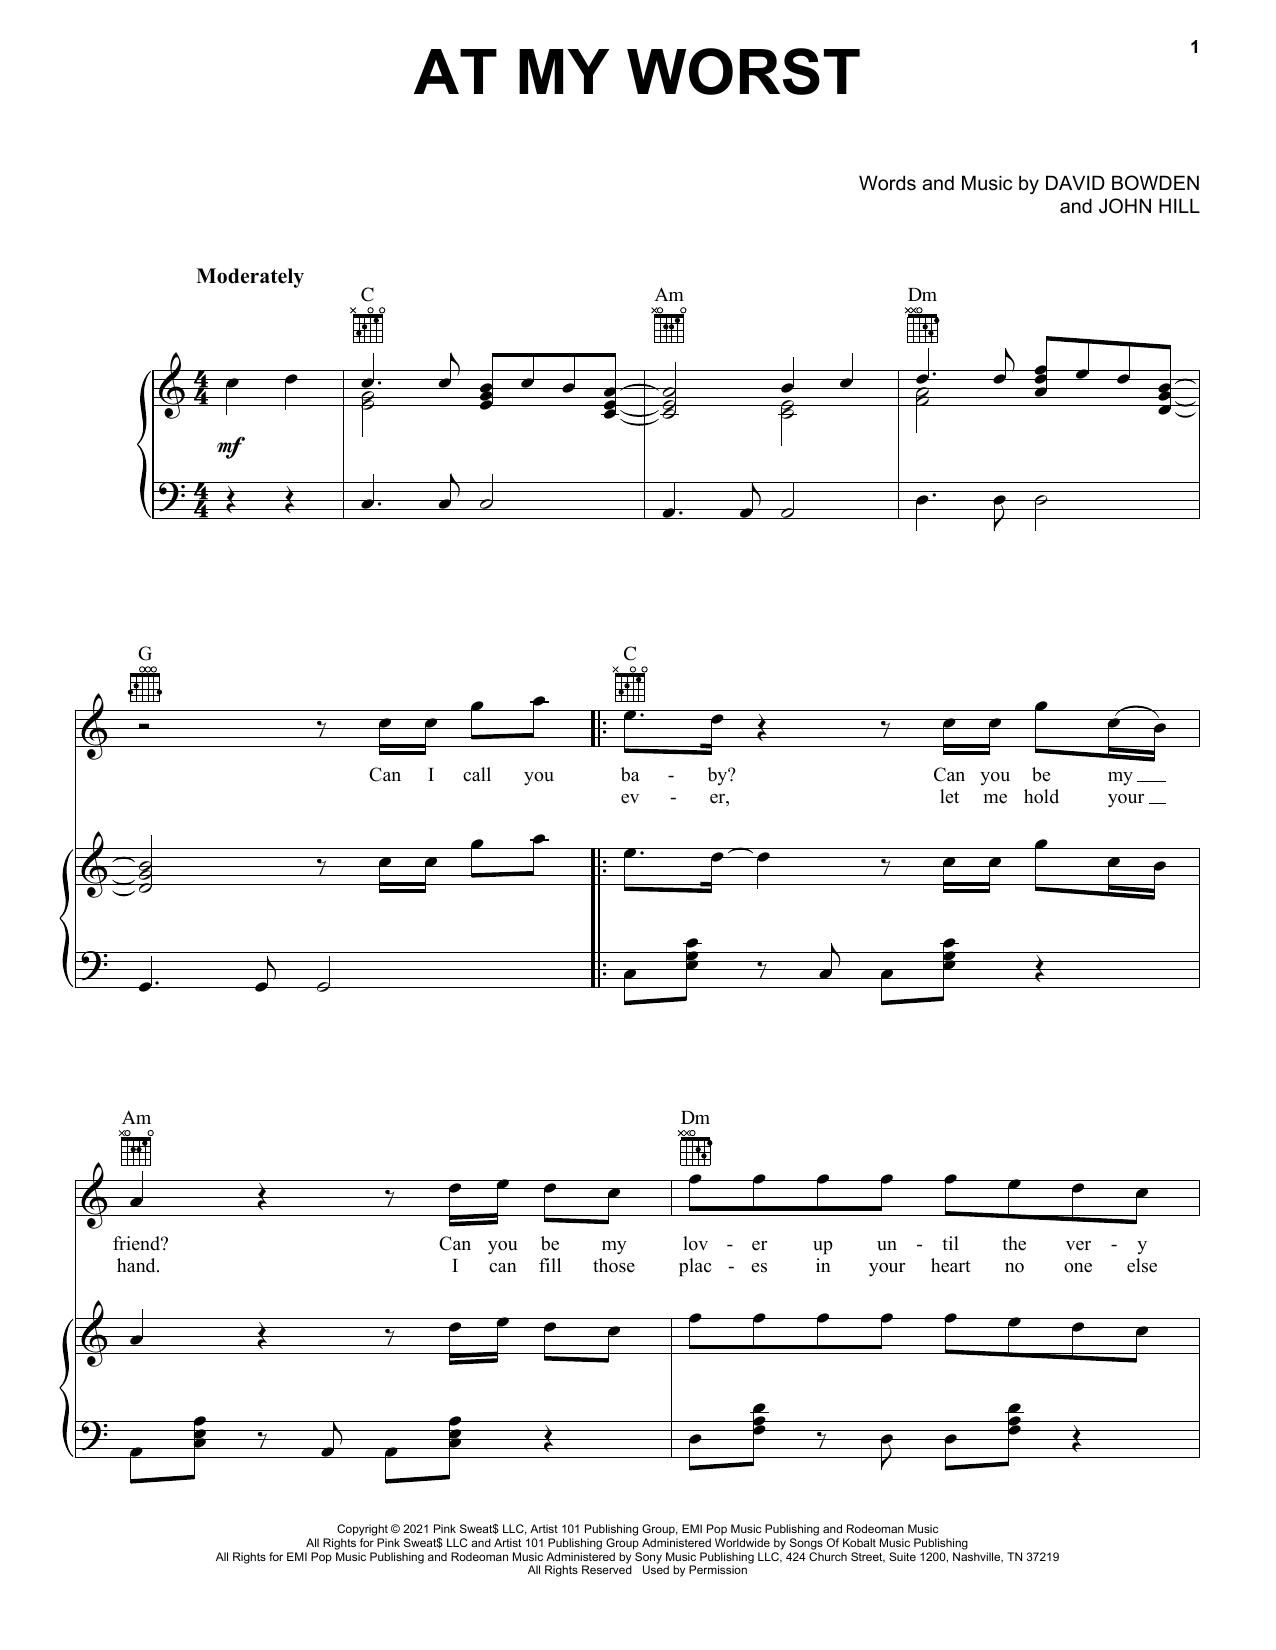 Pink Sweat$ At My Worst sheet music preview music notes and score for Piano, Vocal & Guitar (Right-Hand Melody) including 4 page(s)